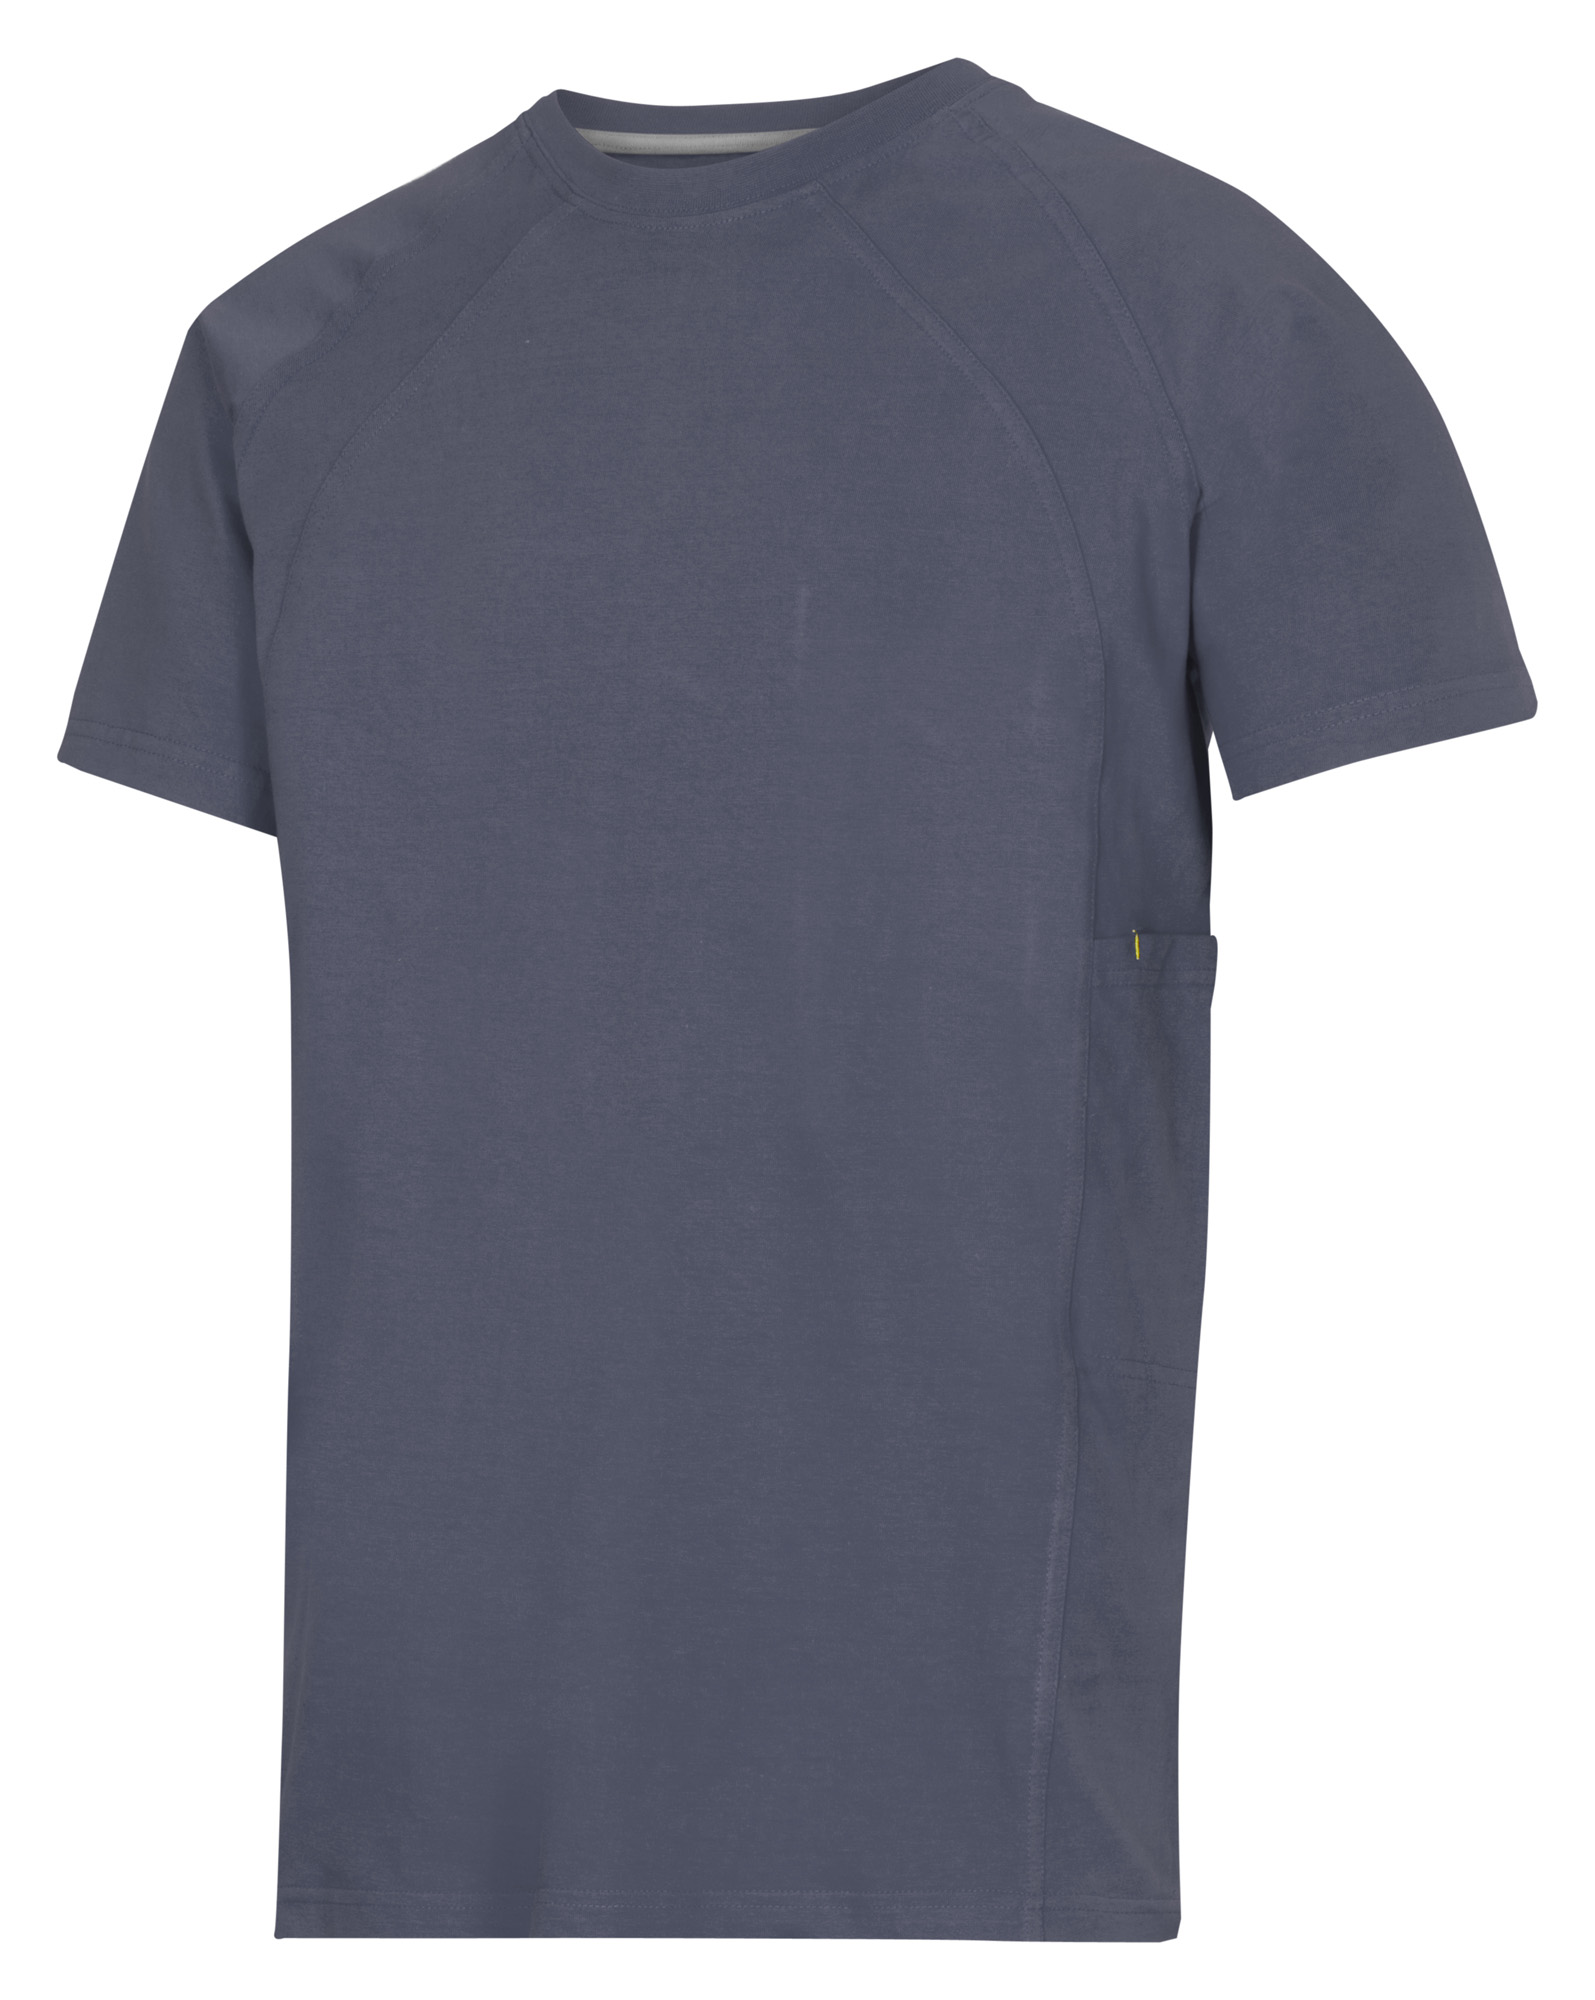 Snickers heavy duty t shirt multipockets uk supplier for Heavy duty work t shirts